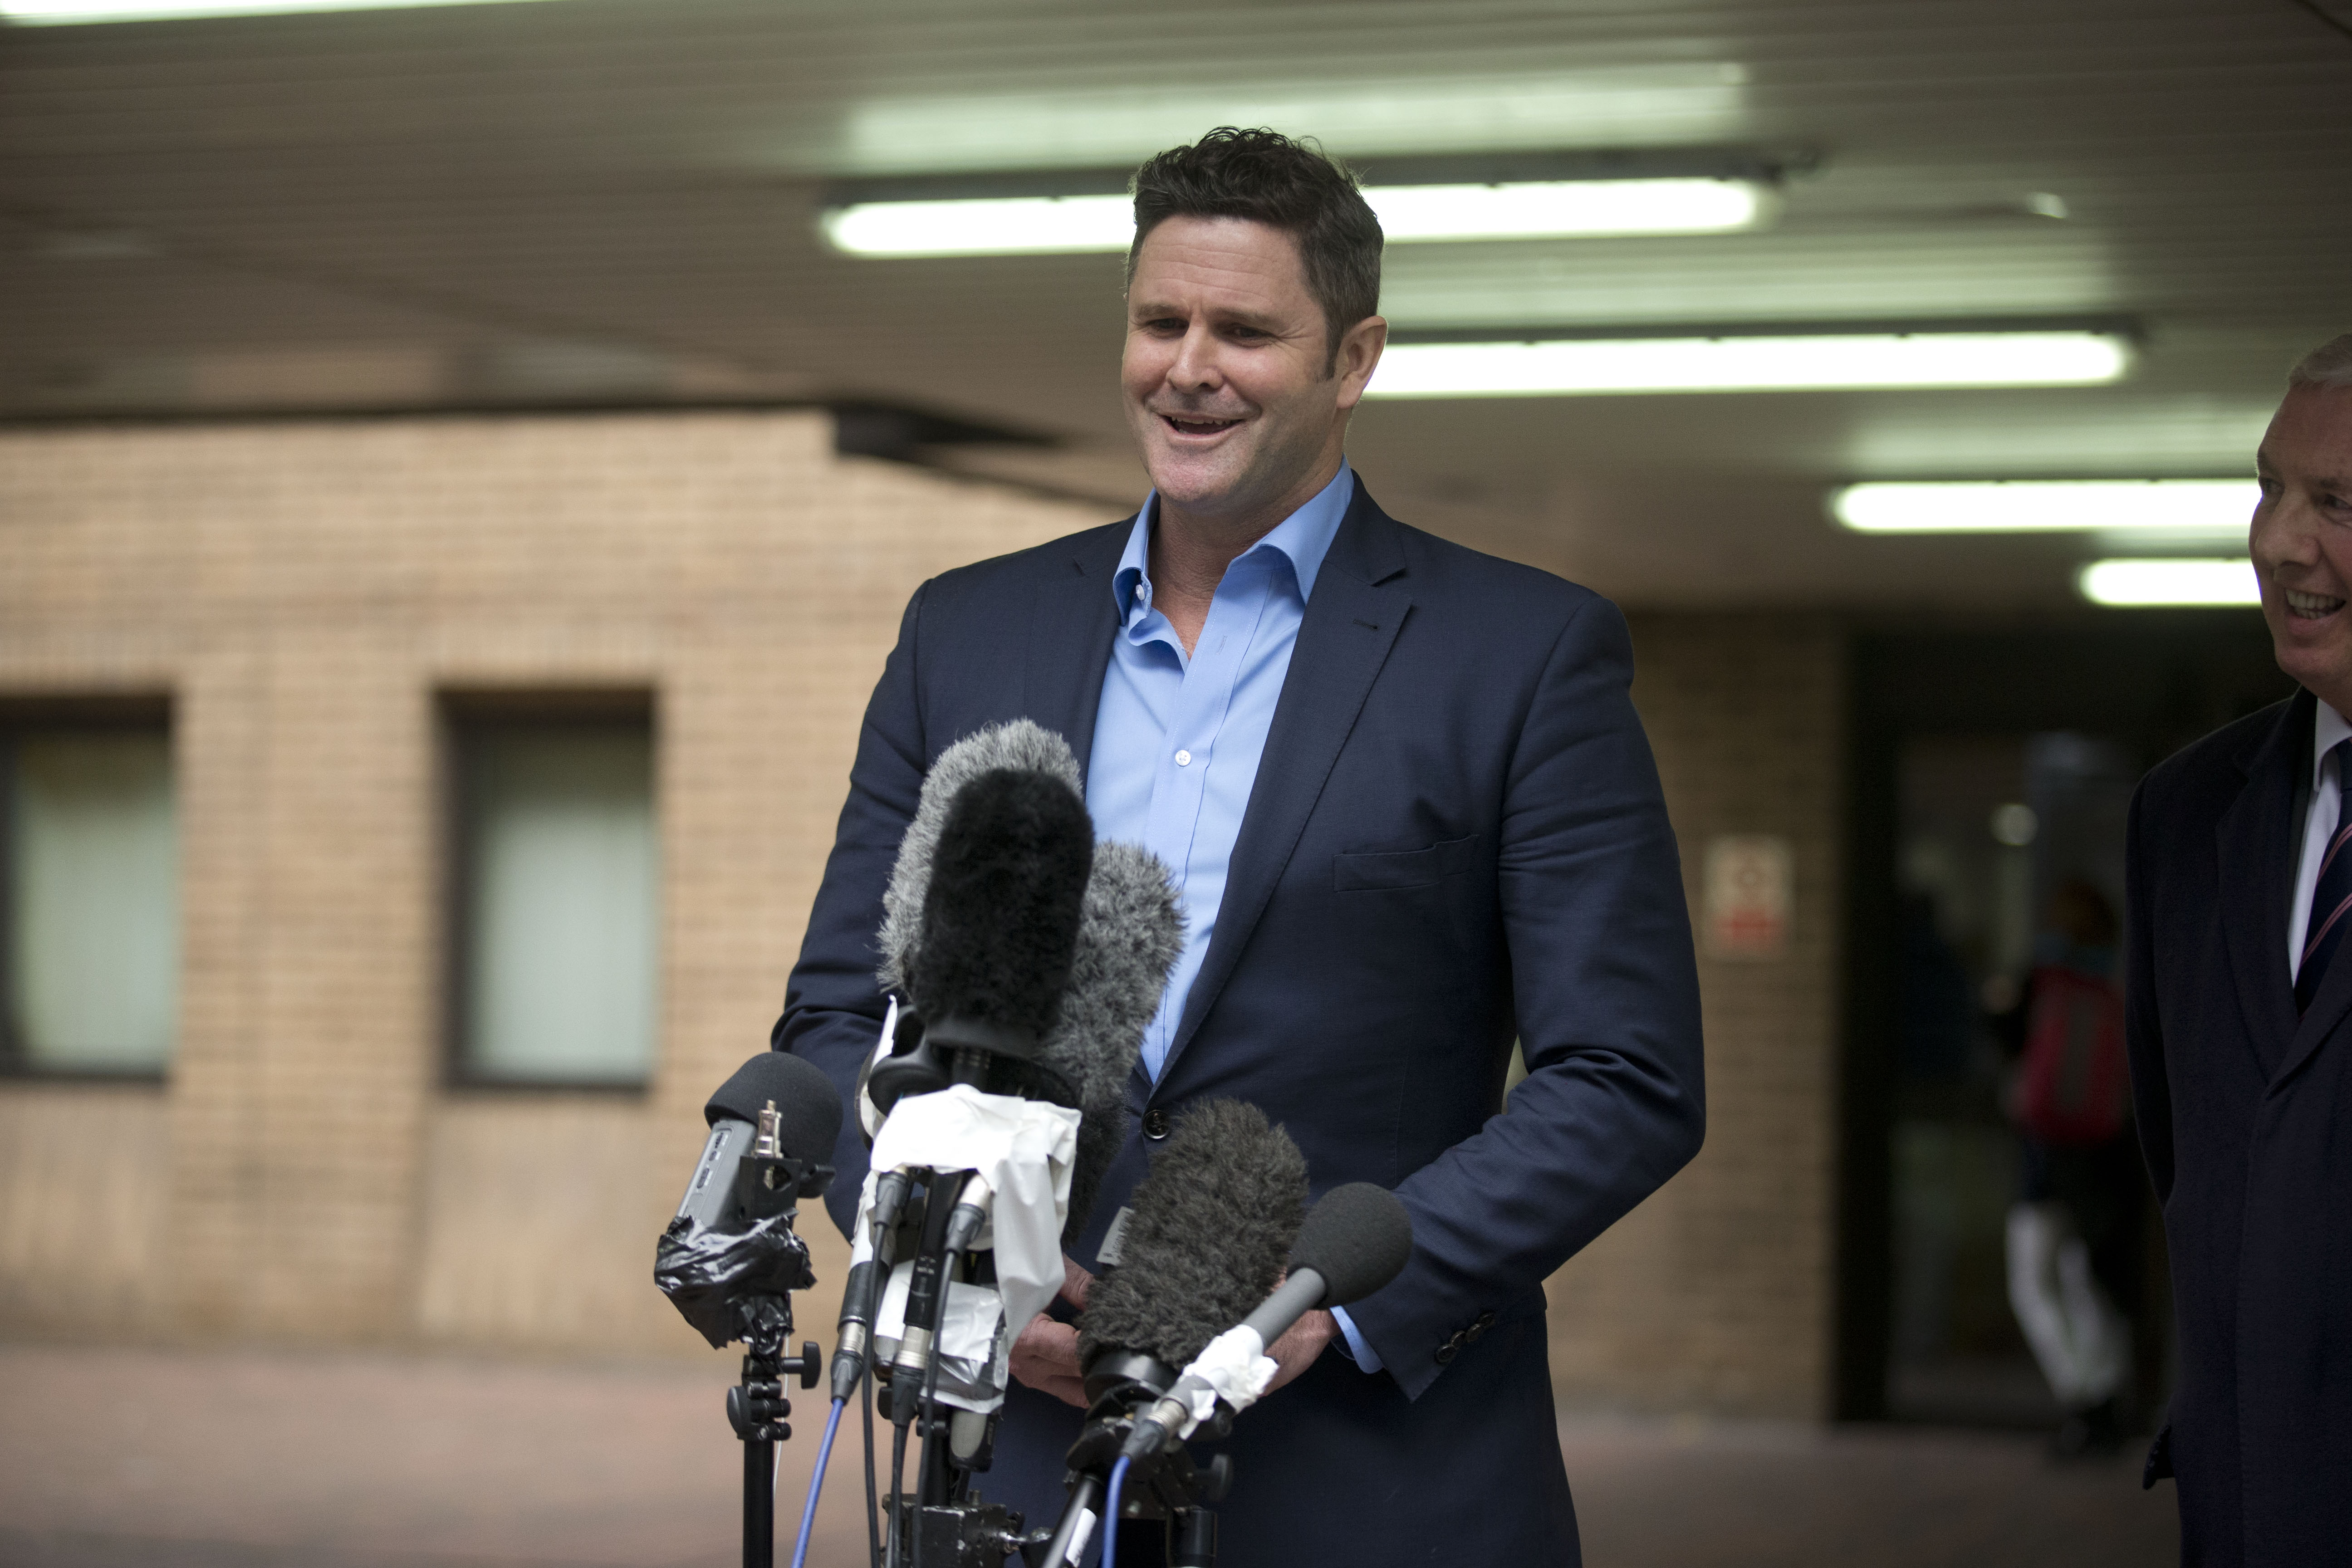 Former New Zealand cricket captain Chris Cairns speaks to the media after being found not-guilty in his perjury trial at Southwark Crown Court in London, Monday, Nov. 30, 2015. Photo: AP